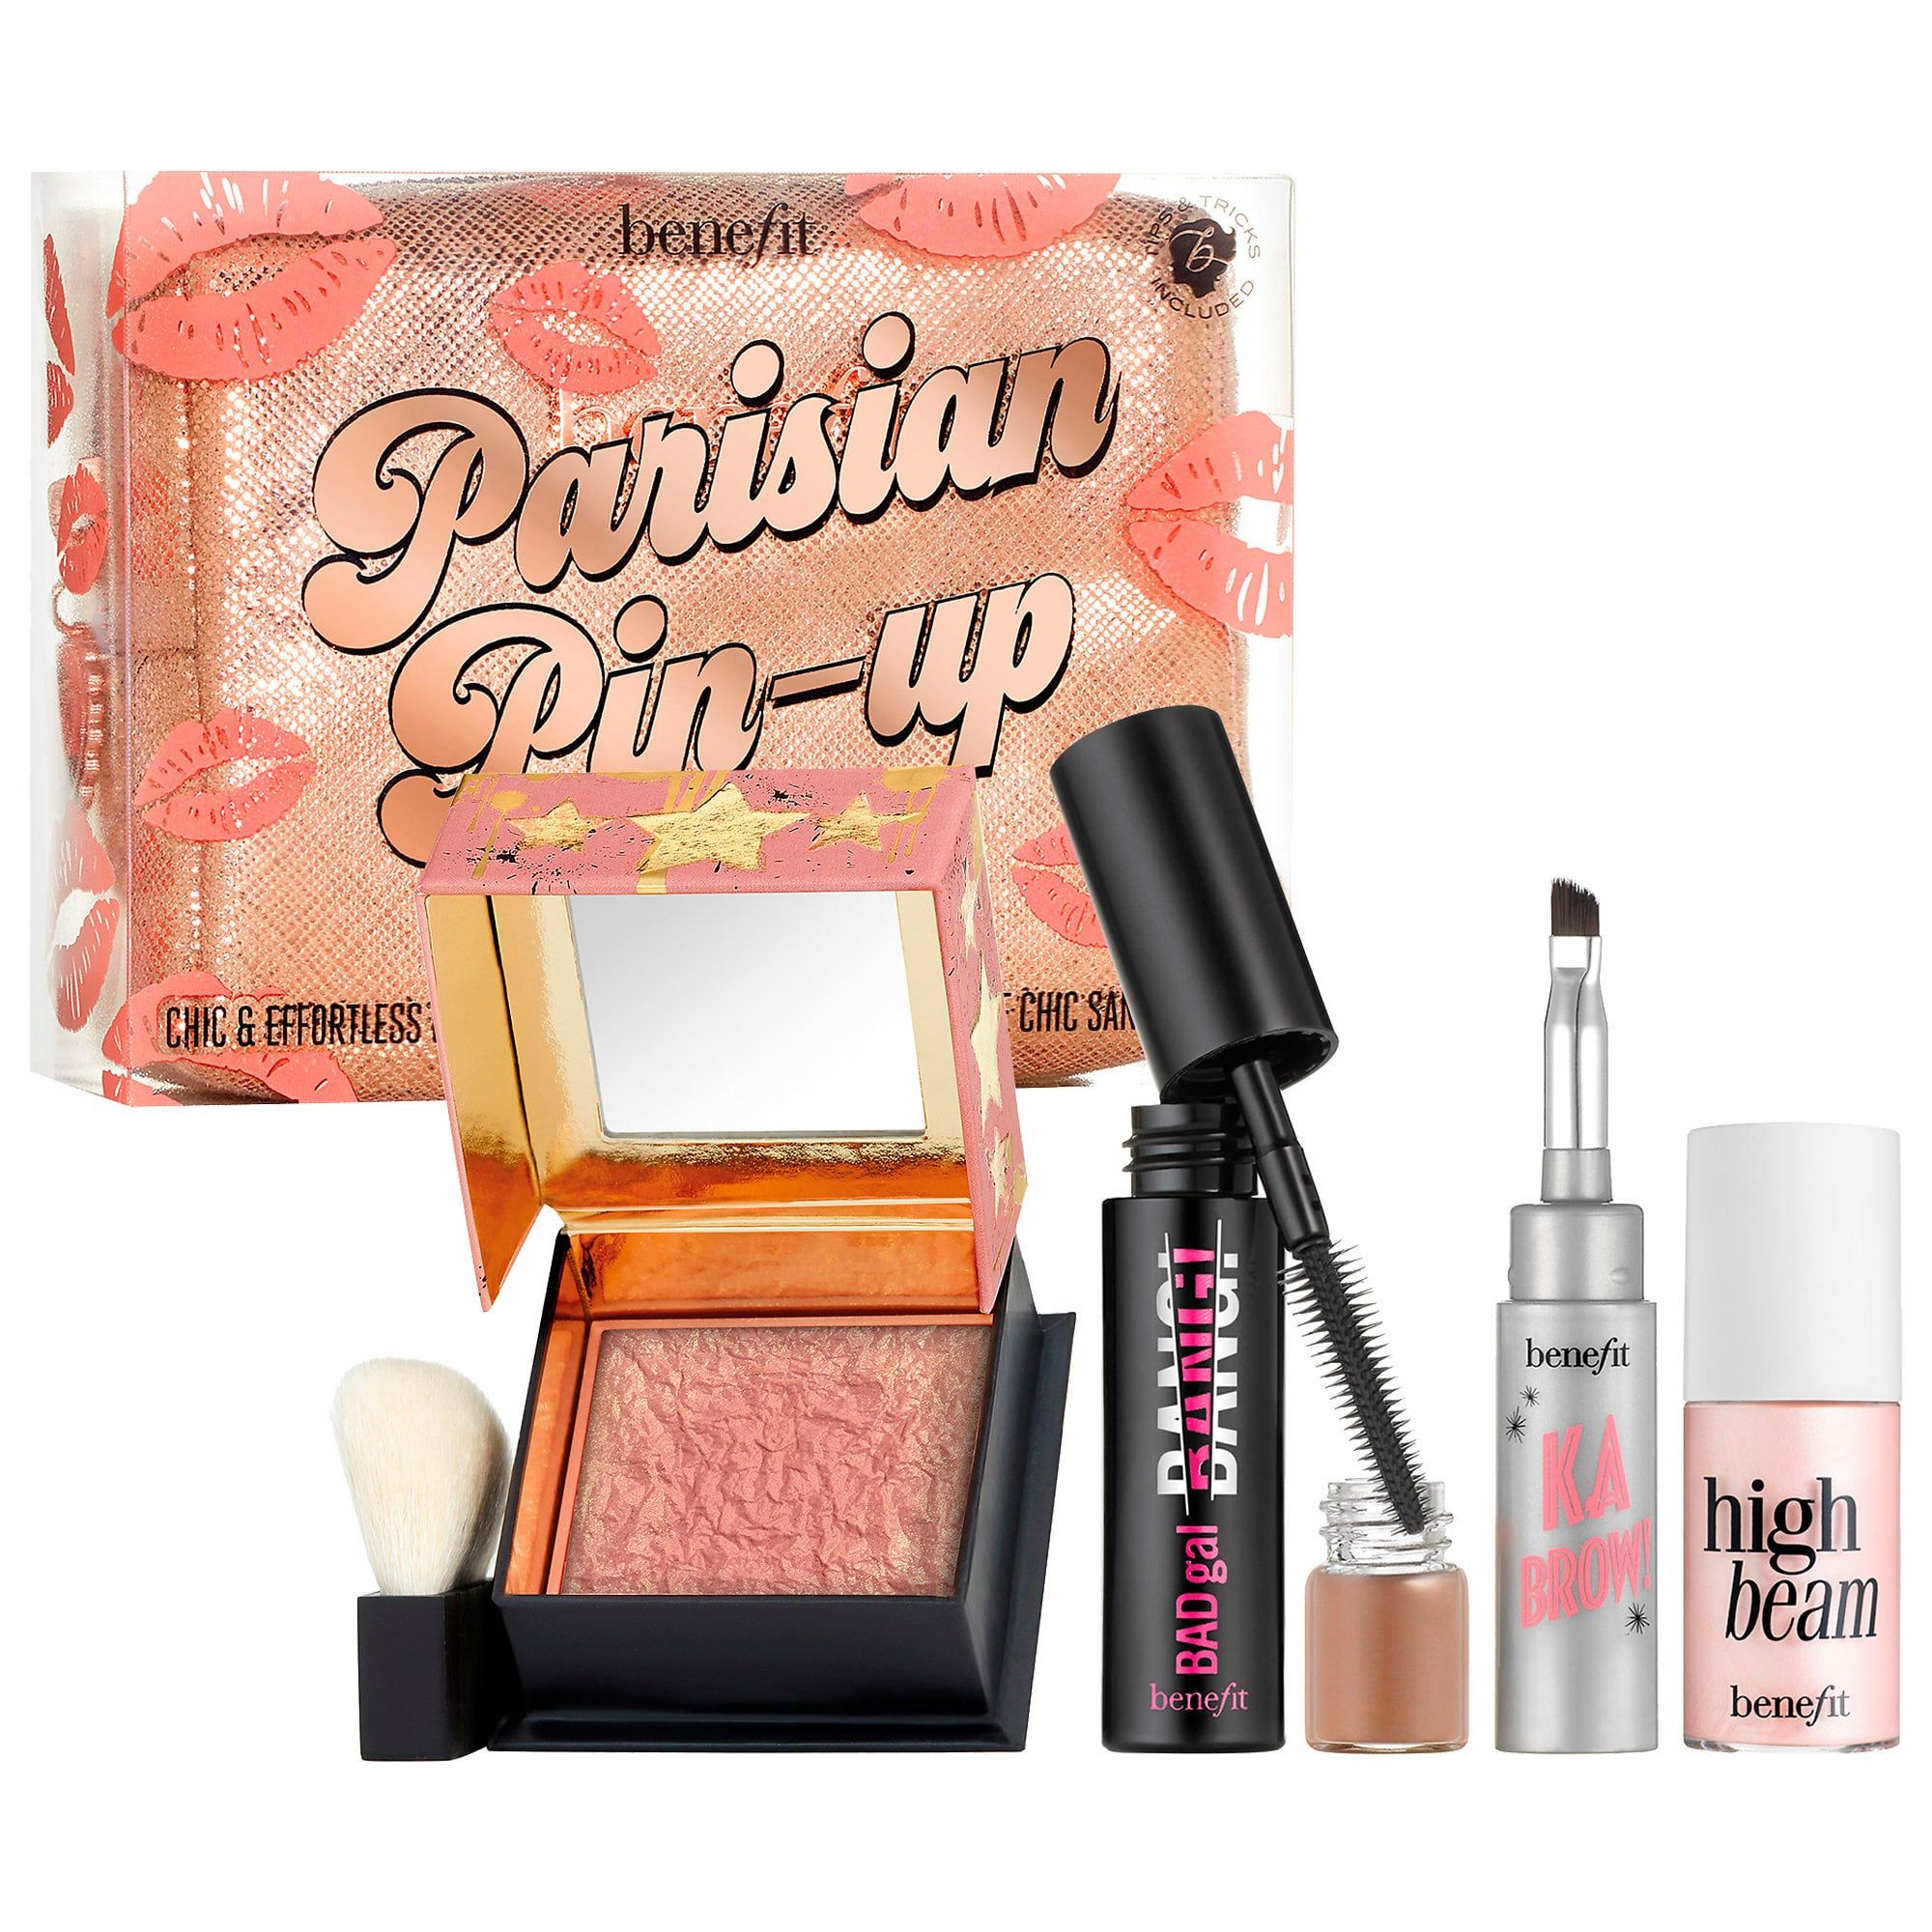 803d18e85637 Benefit Cosmetics Parisian Pin Up Brow